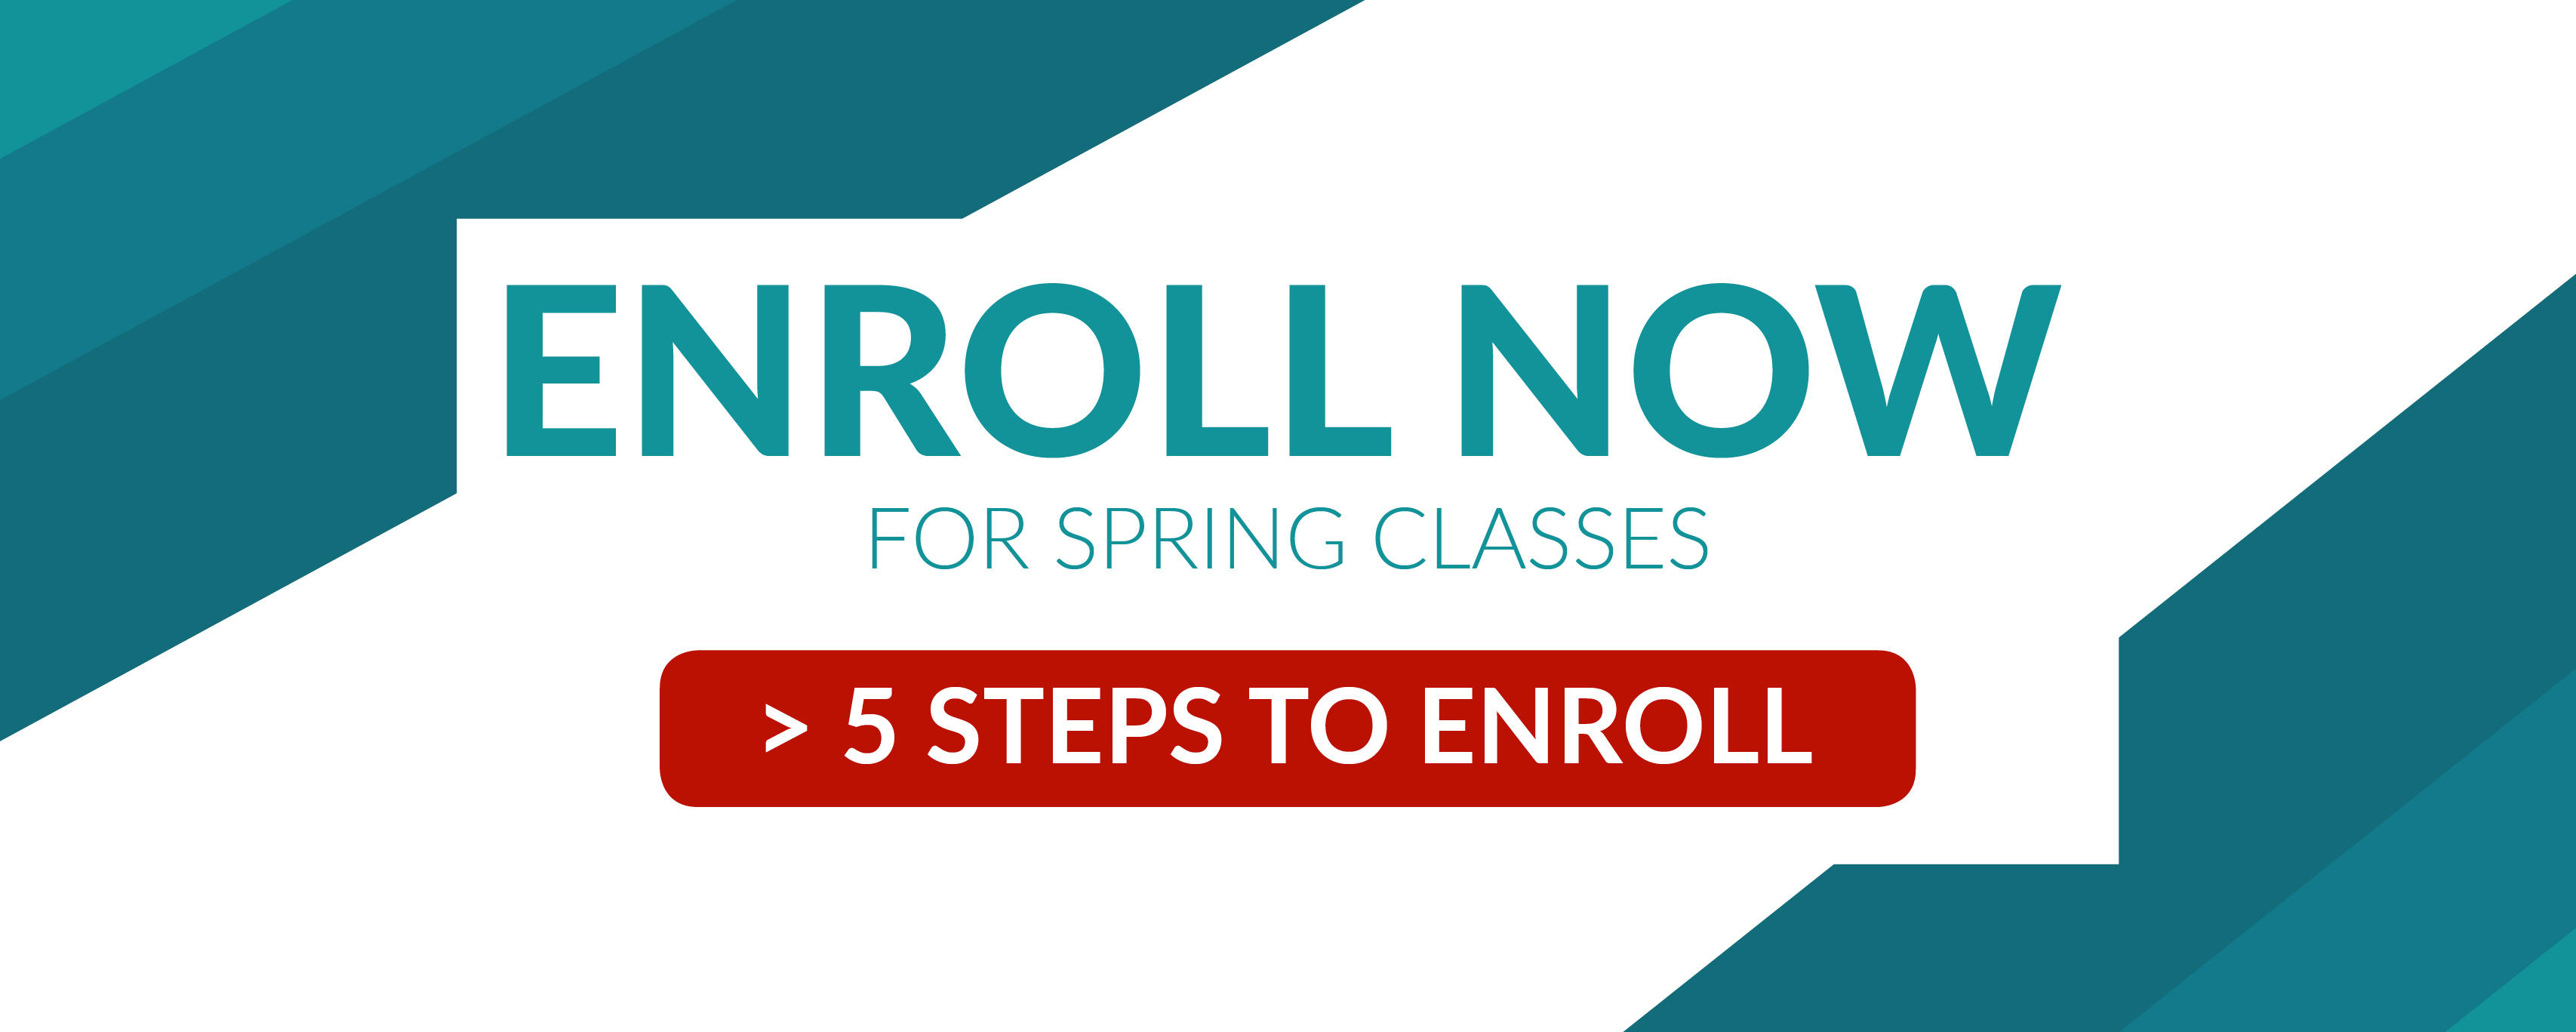 Enroll for spring classes at Donnelly College